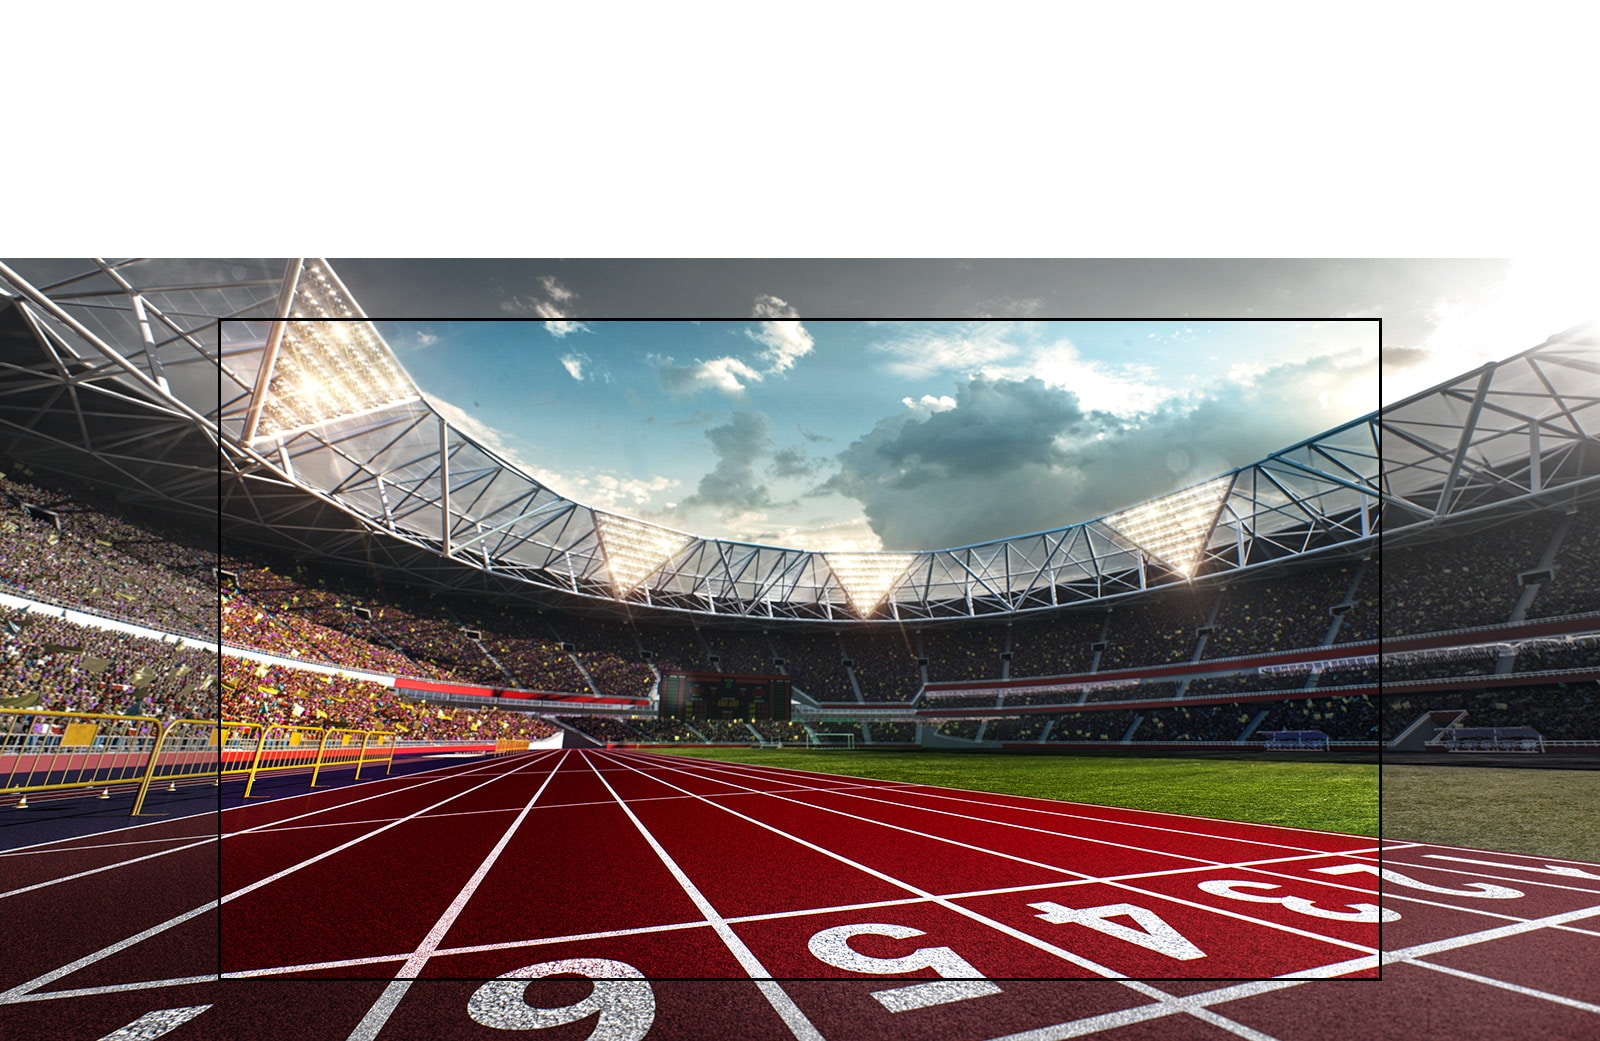 TV screen showing a stadium with a view of the running track up close. Stadium is filled with spectators.